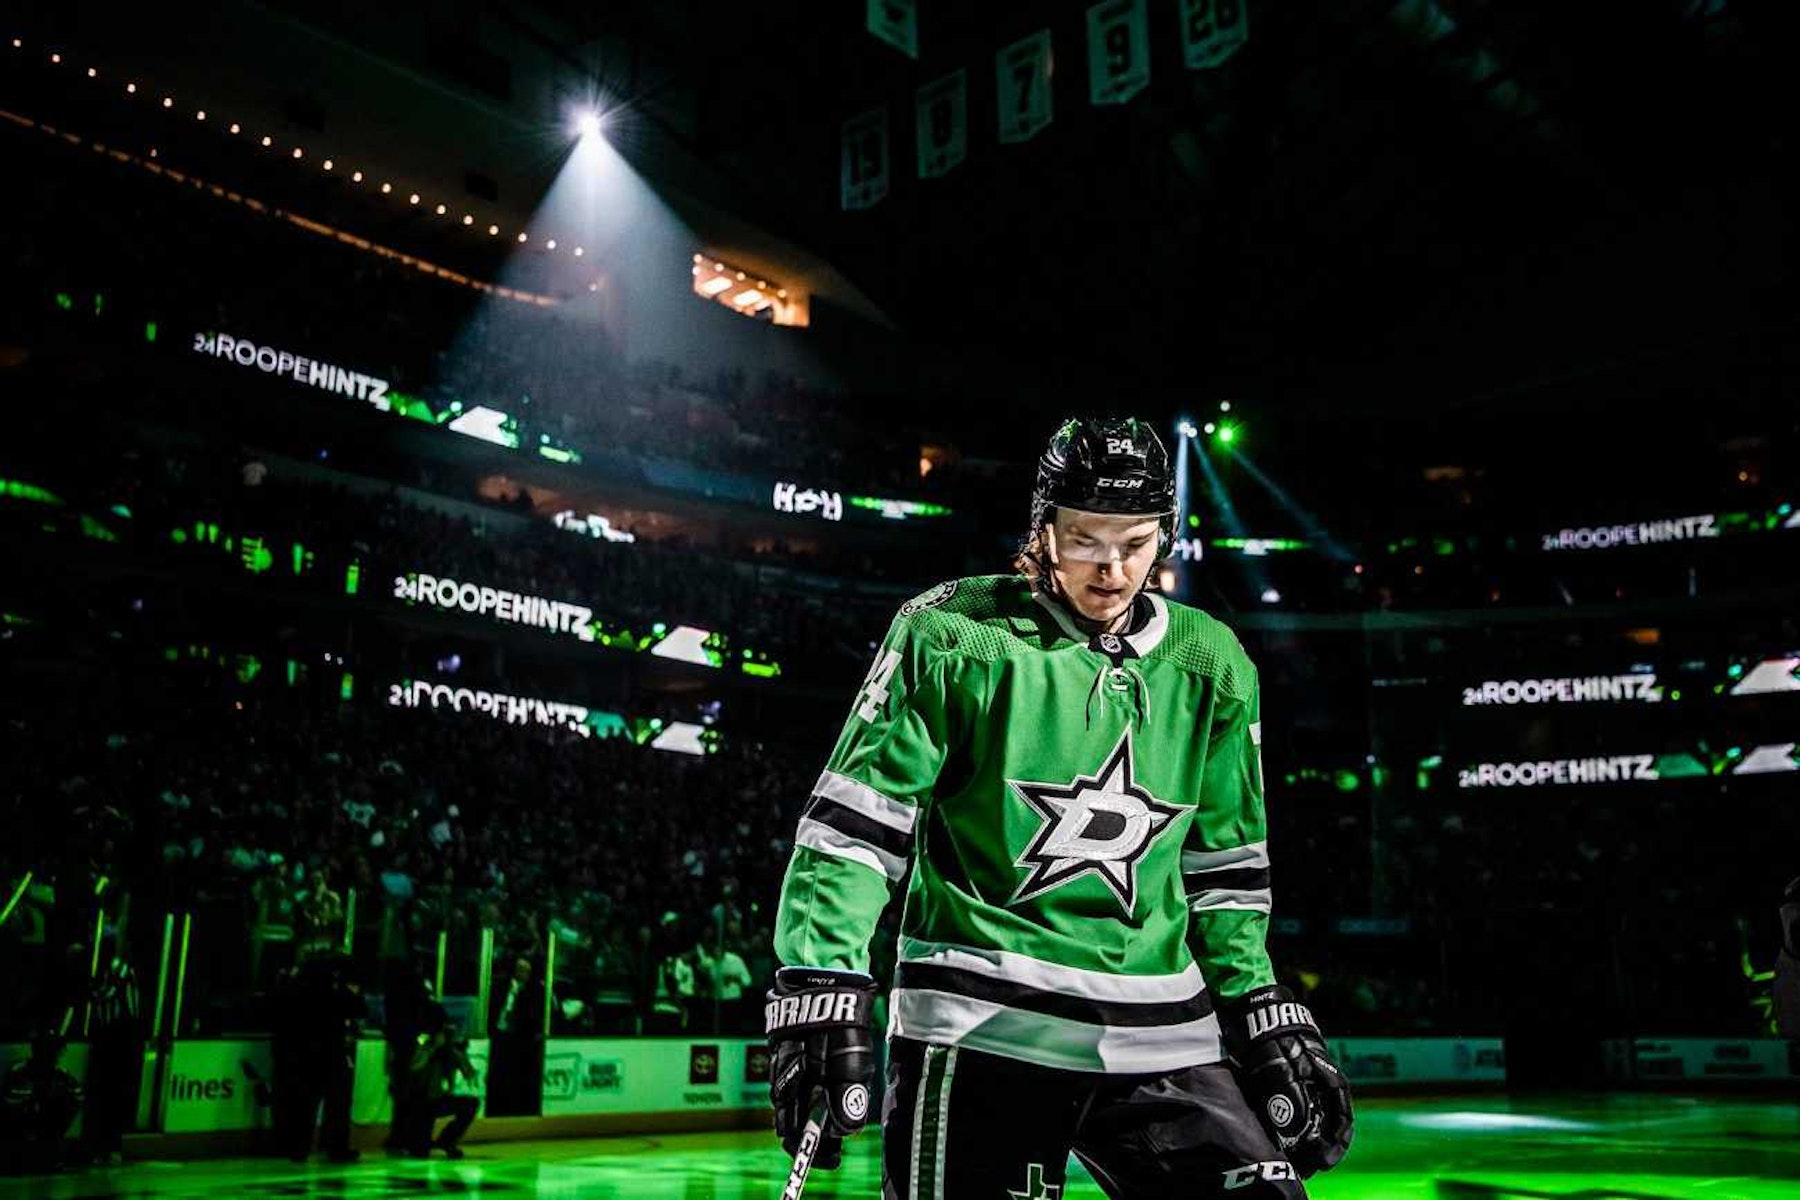 Detroit Red Wings at Dallas Stars